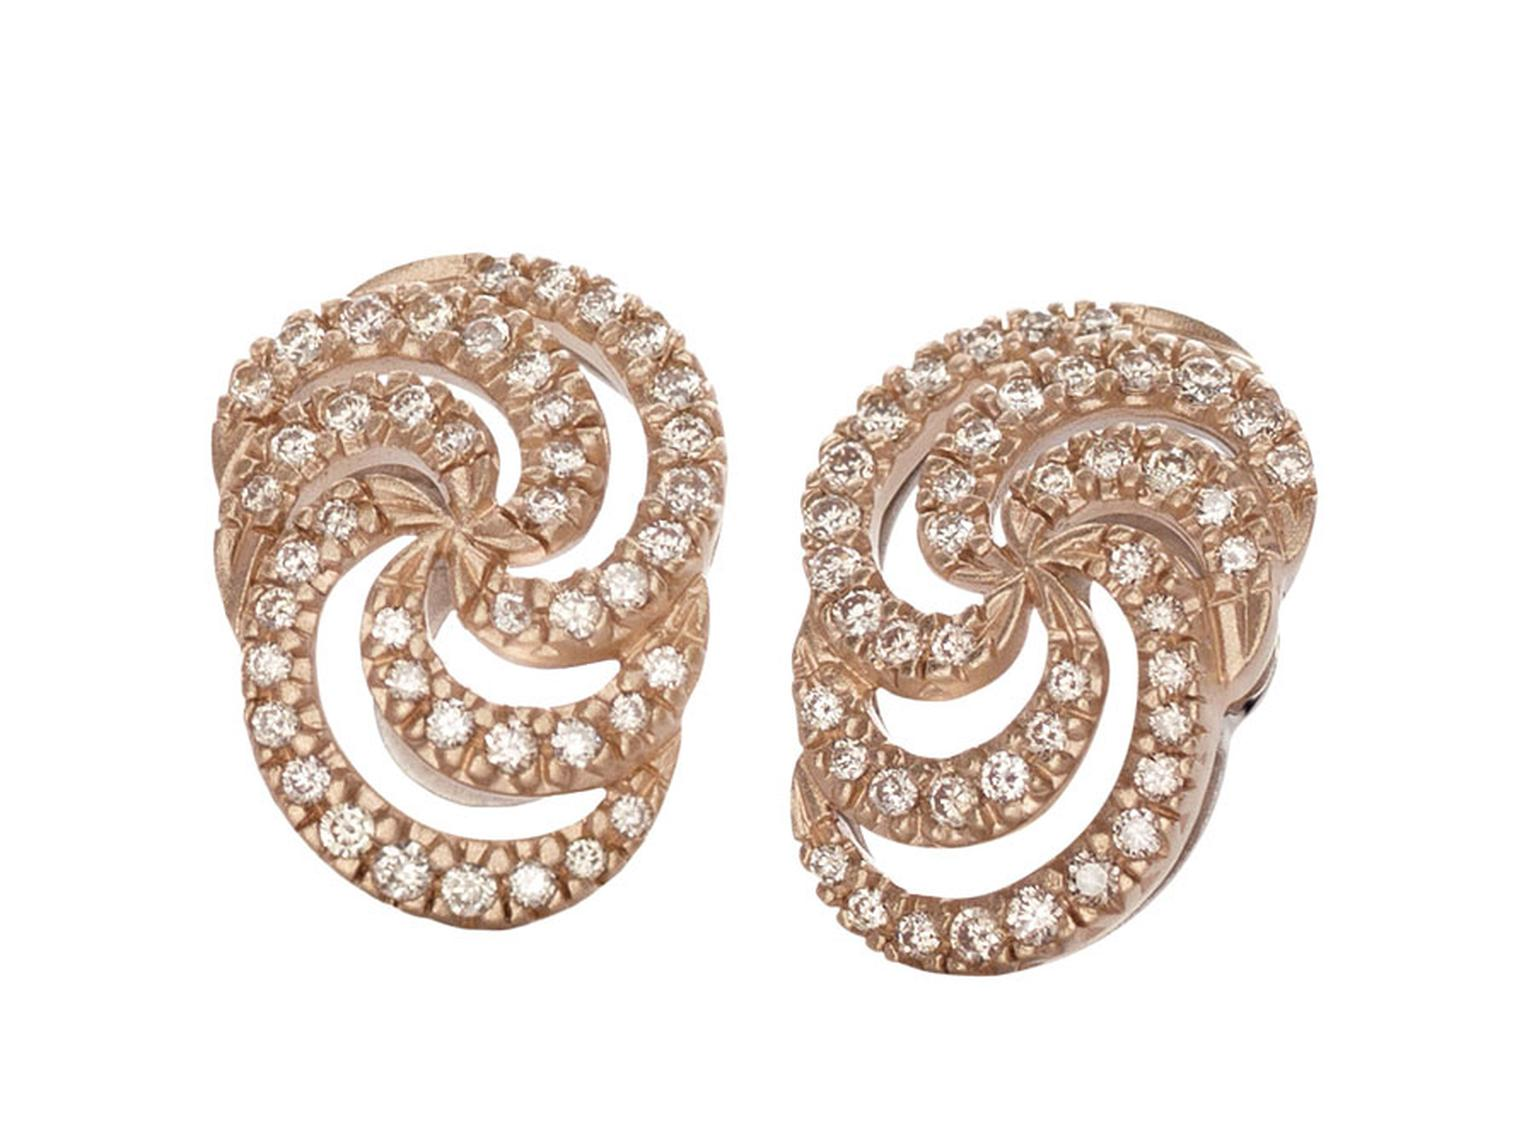 H-Stern-Earrings-in-rose-gold-with-diamonds-2.jpg